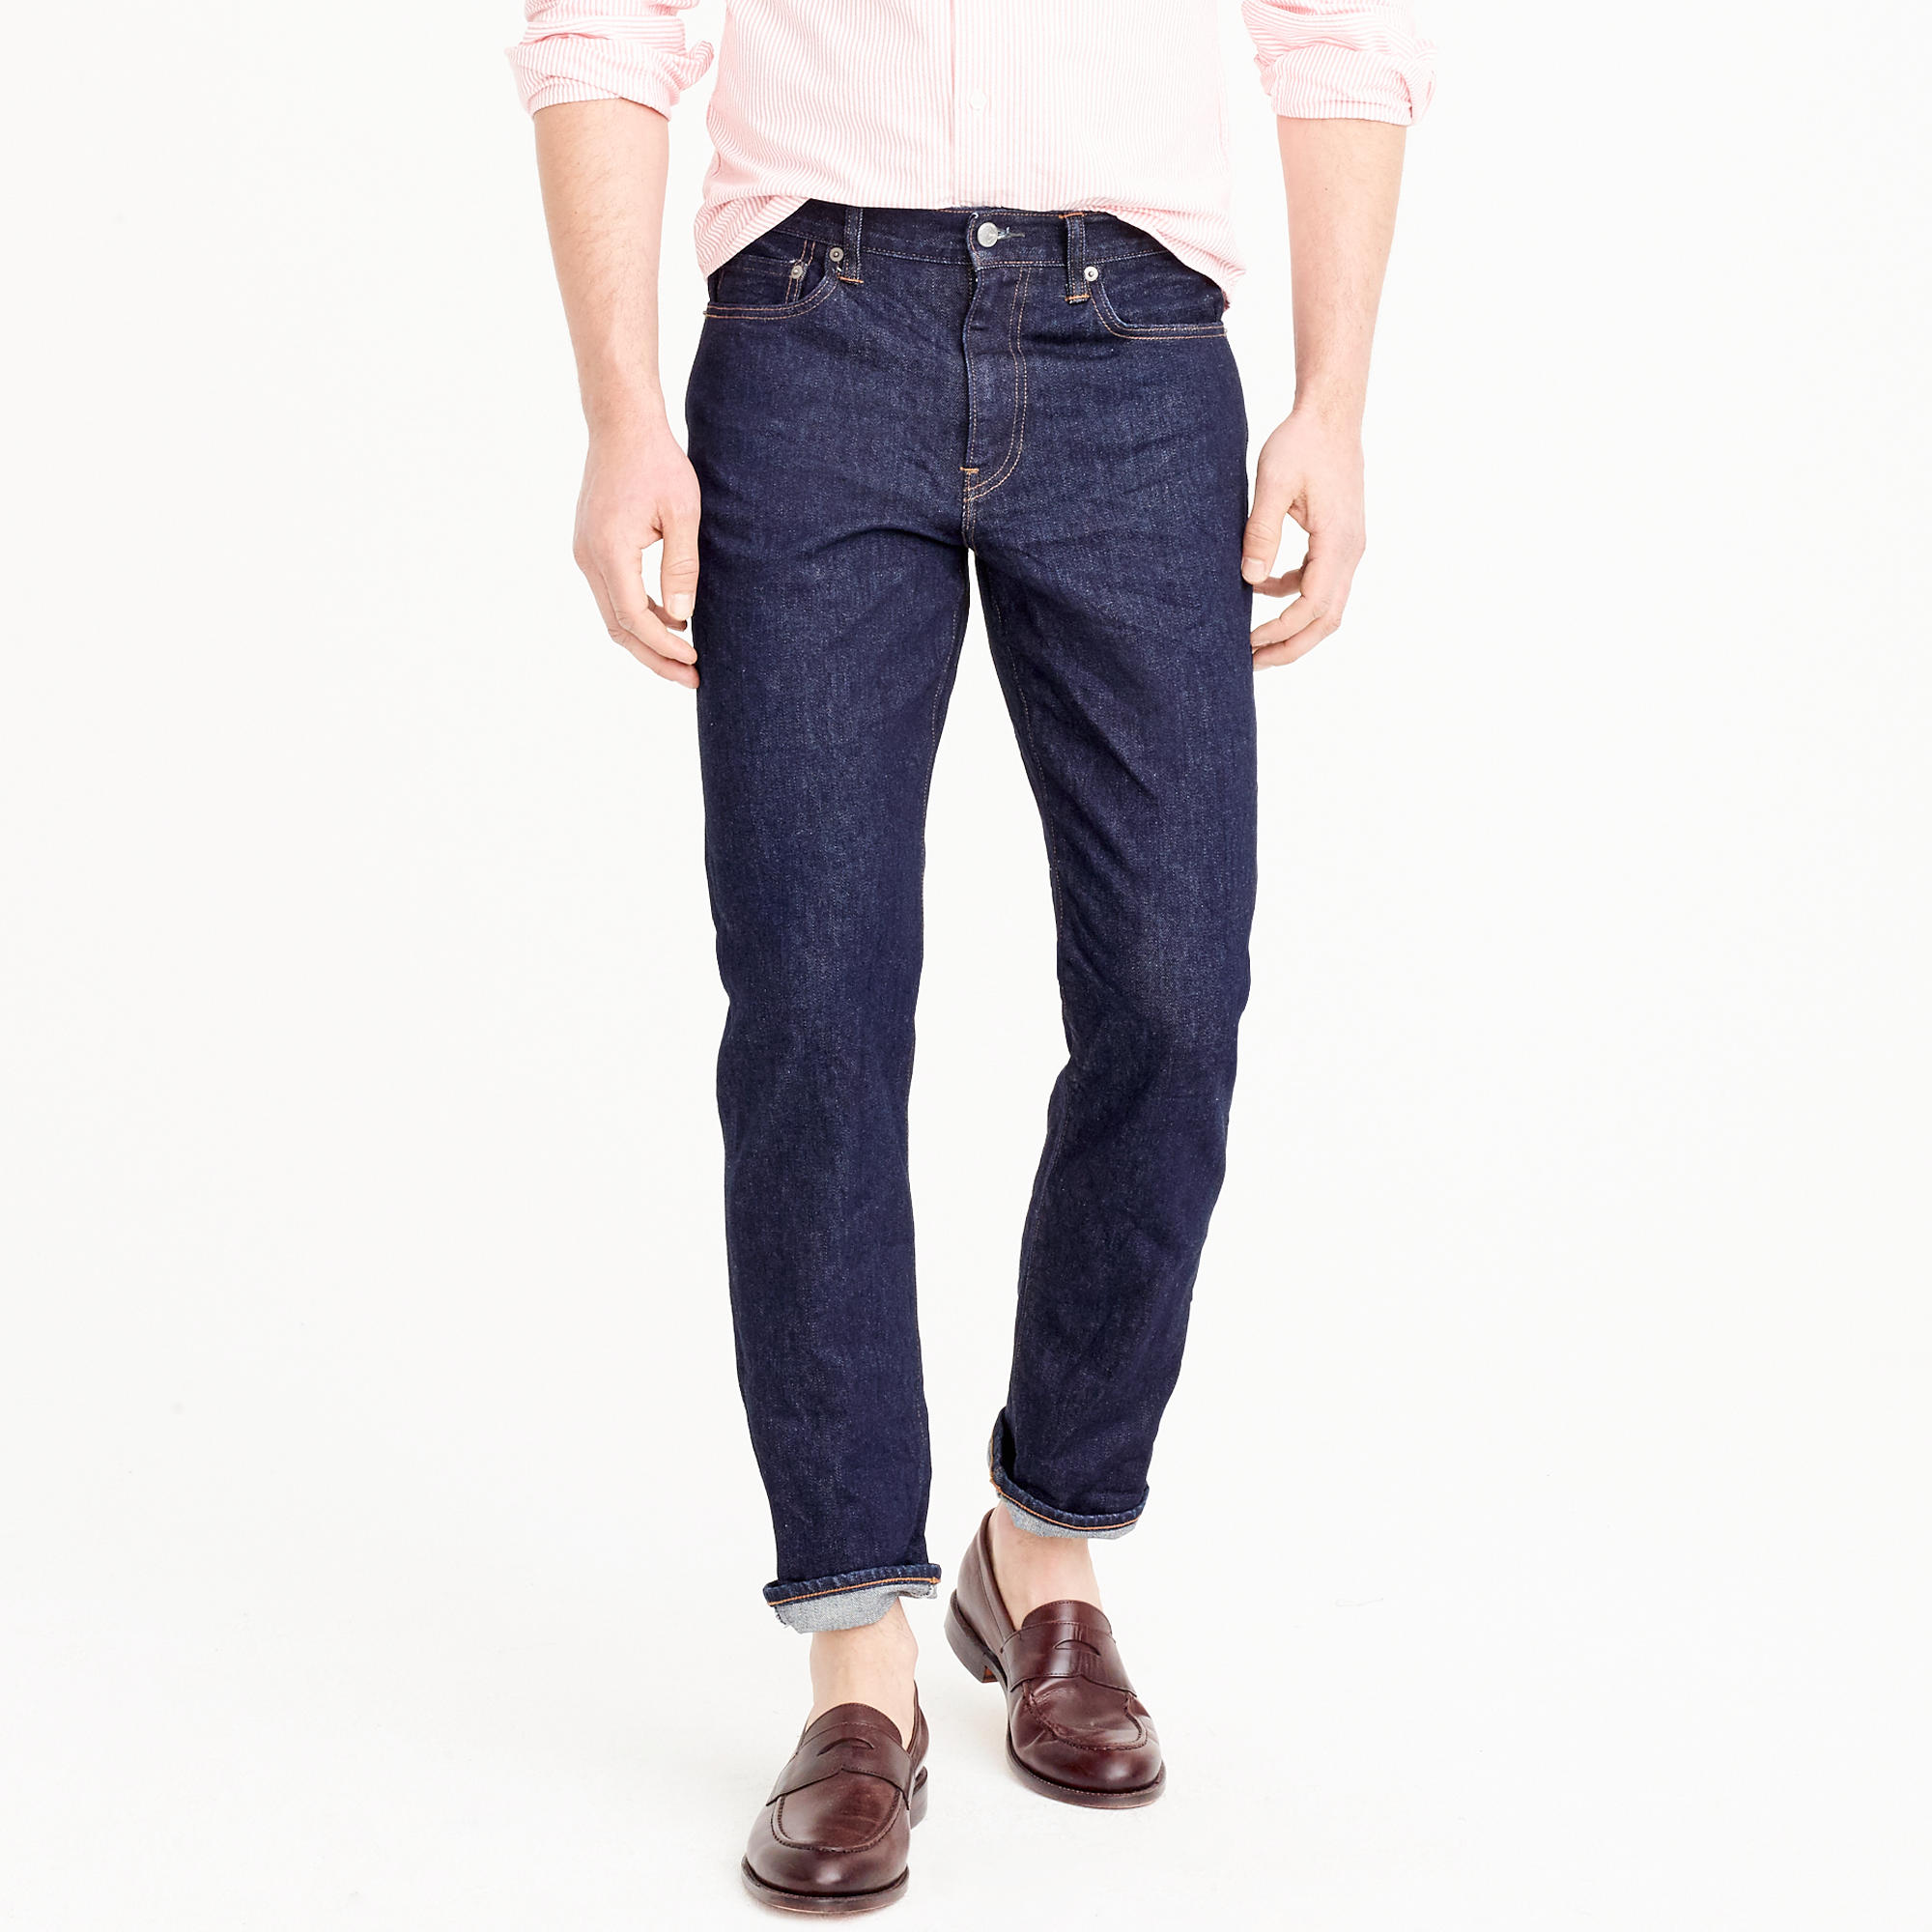 Men's Jeans & Denim | J.Crew